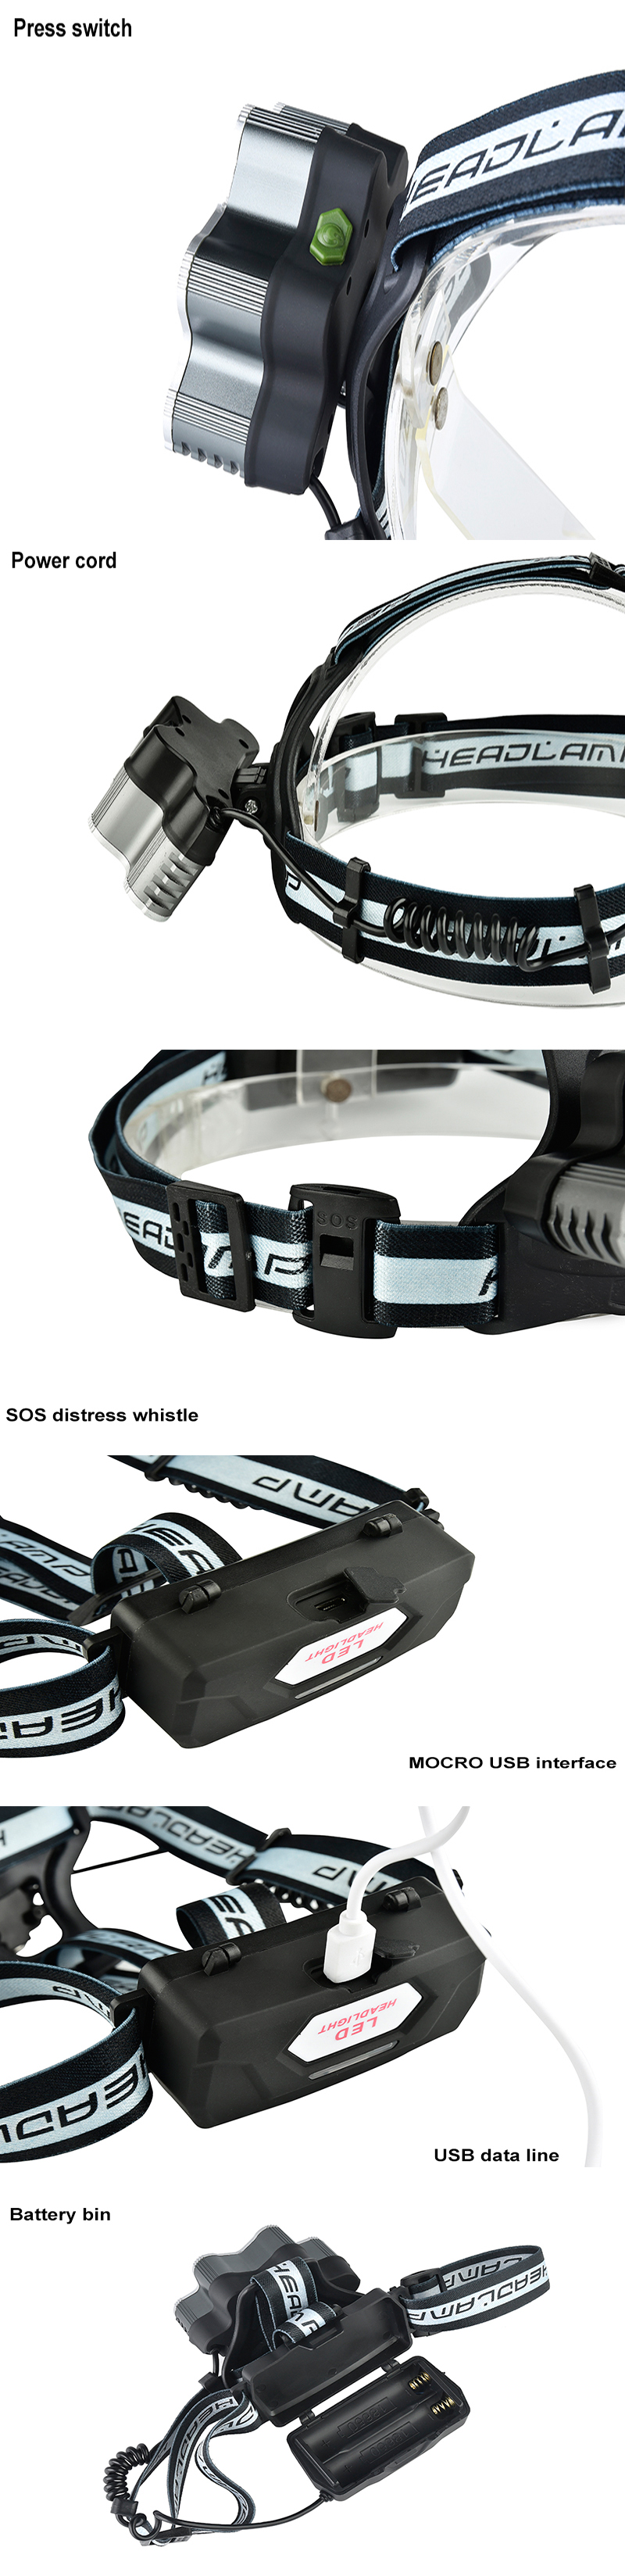 XANES 2501-B 2500 Lumens 9LED Cycling Headlamp 6 Switch Modes 7x T6+ 2x XPE Sport Light